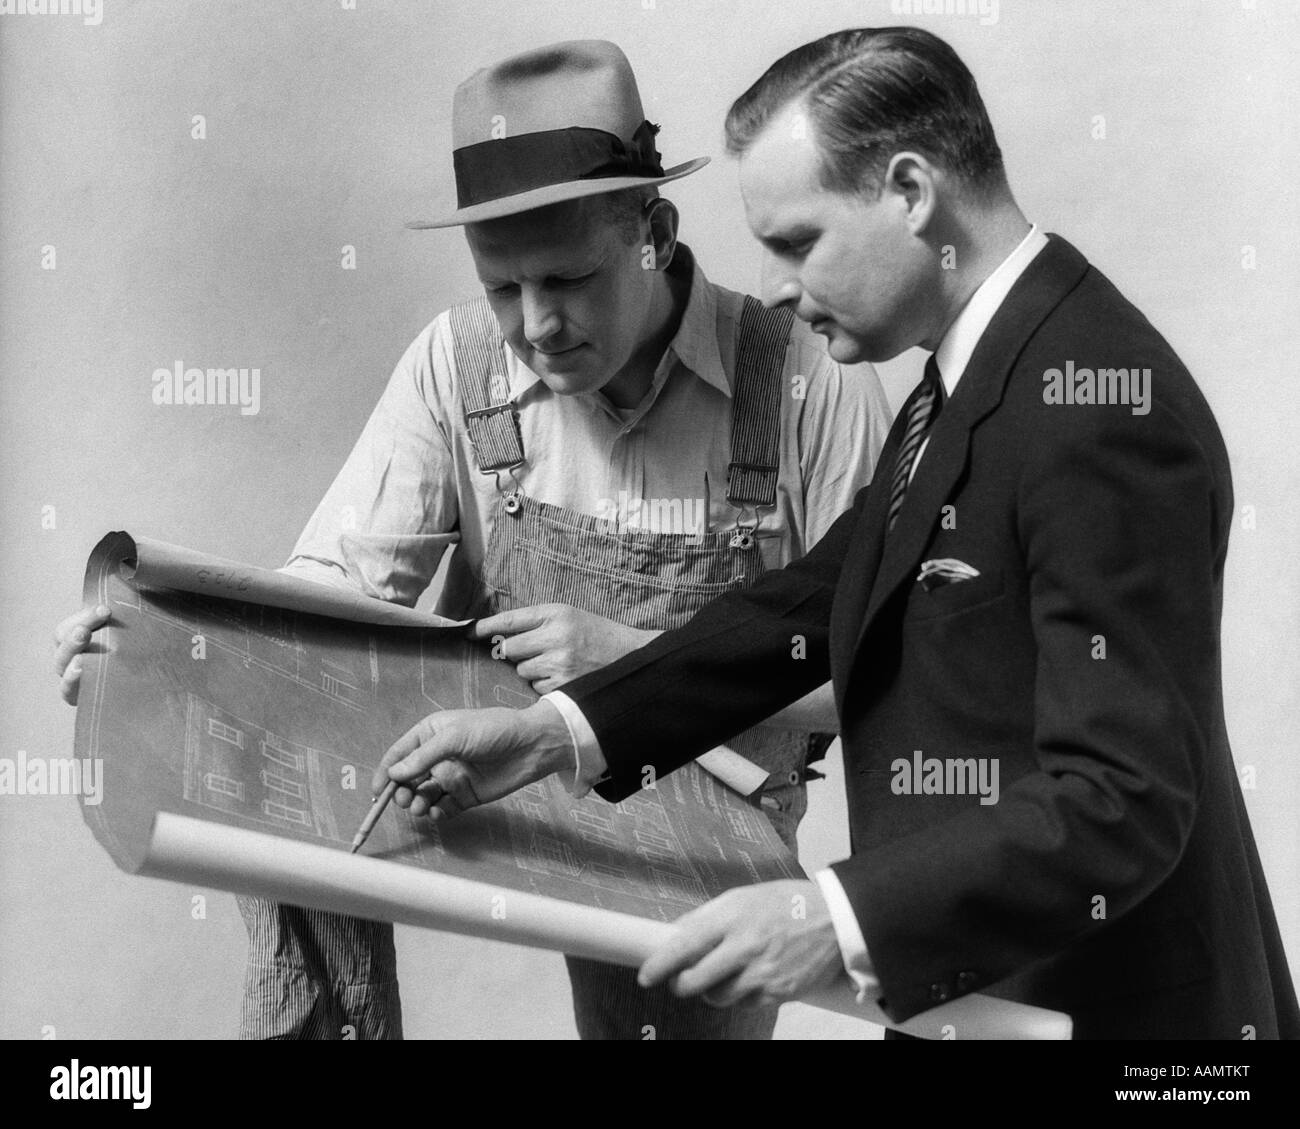 High Quality 1930s MAN ARCHITECT WEARING SUIT GOING OVER BLUE PRINTS WITH A BUILDER IN  WORK CLOTHES